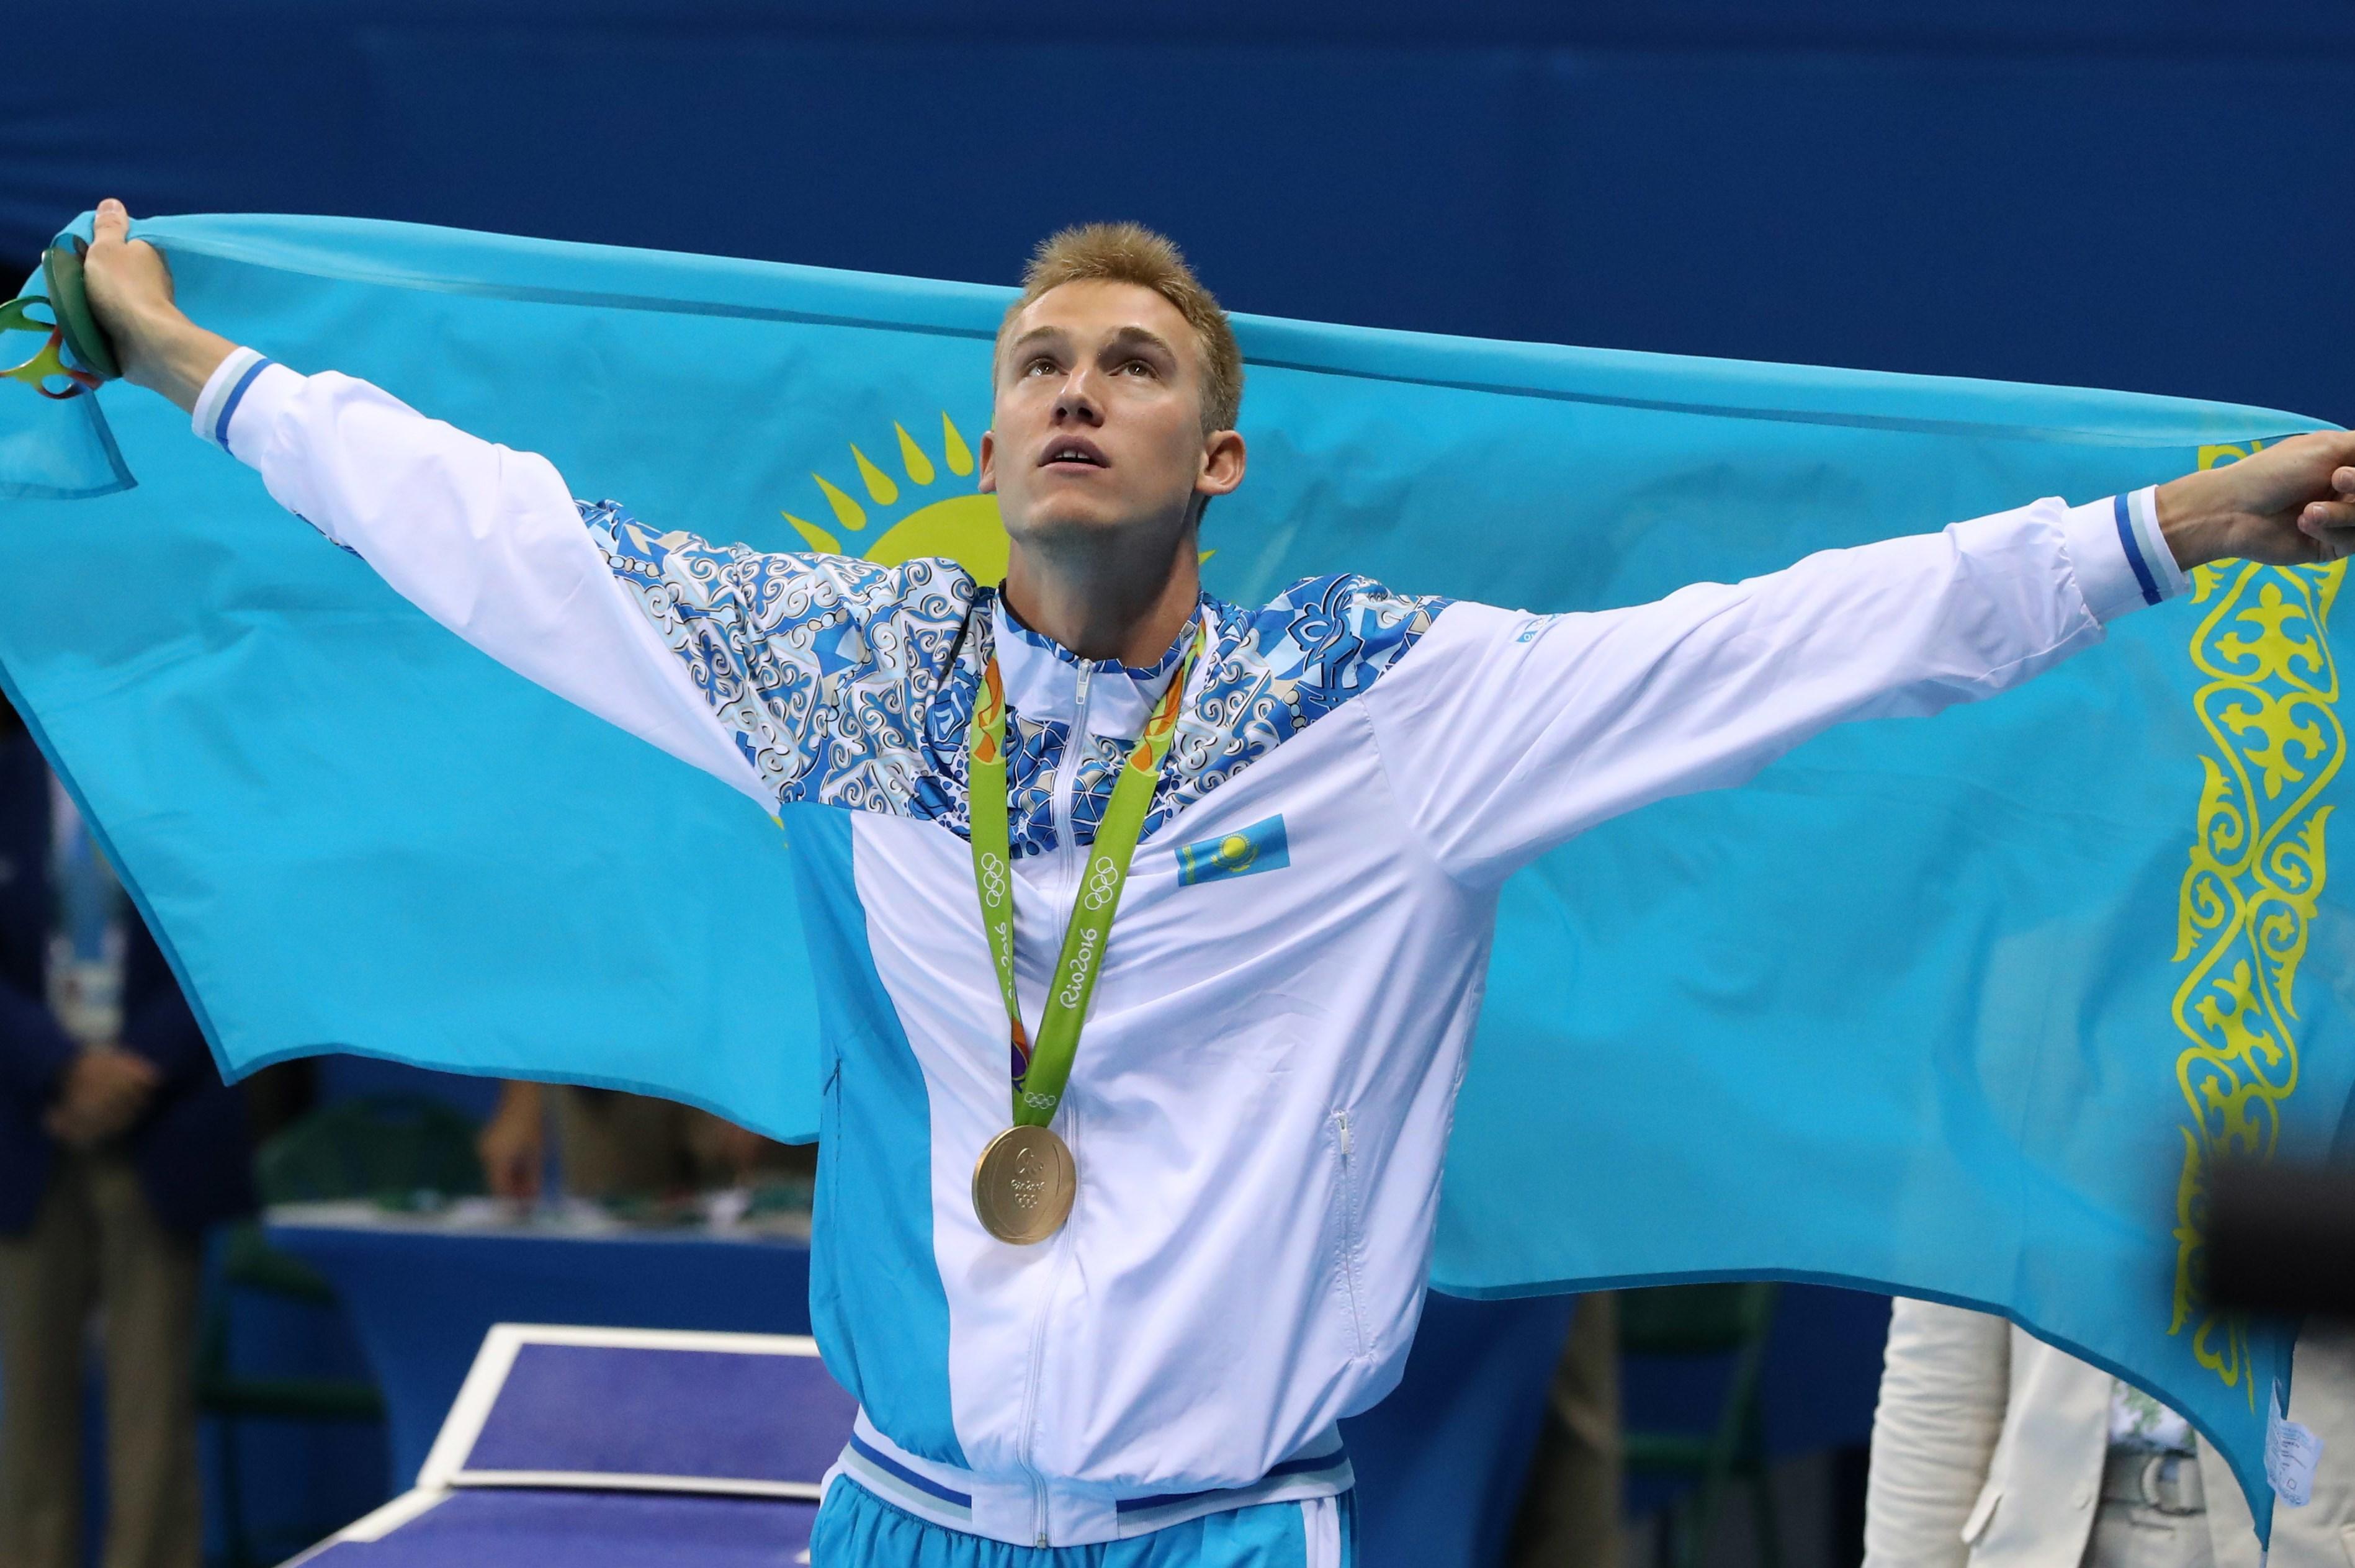 Kazakhstan's Dmitriy Balandin celebrates winning the gold medal in the men's 200-meter breaststroke during the swimming competitions at the 2016 Summer Olympics, Wednesday, Aug. 10, 2016, in Rio de Janeiro, Brazil. (AP Photo/Lee Jin-man)